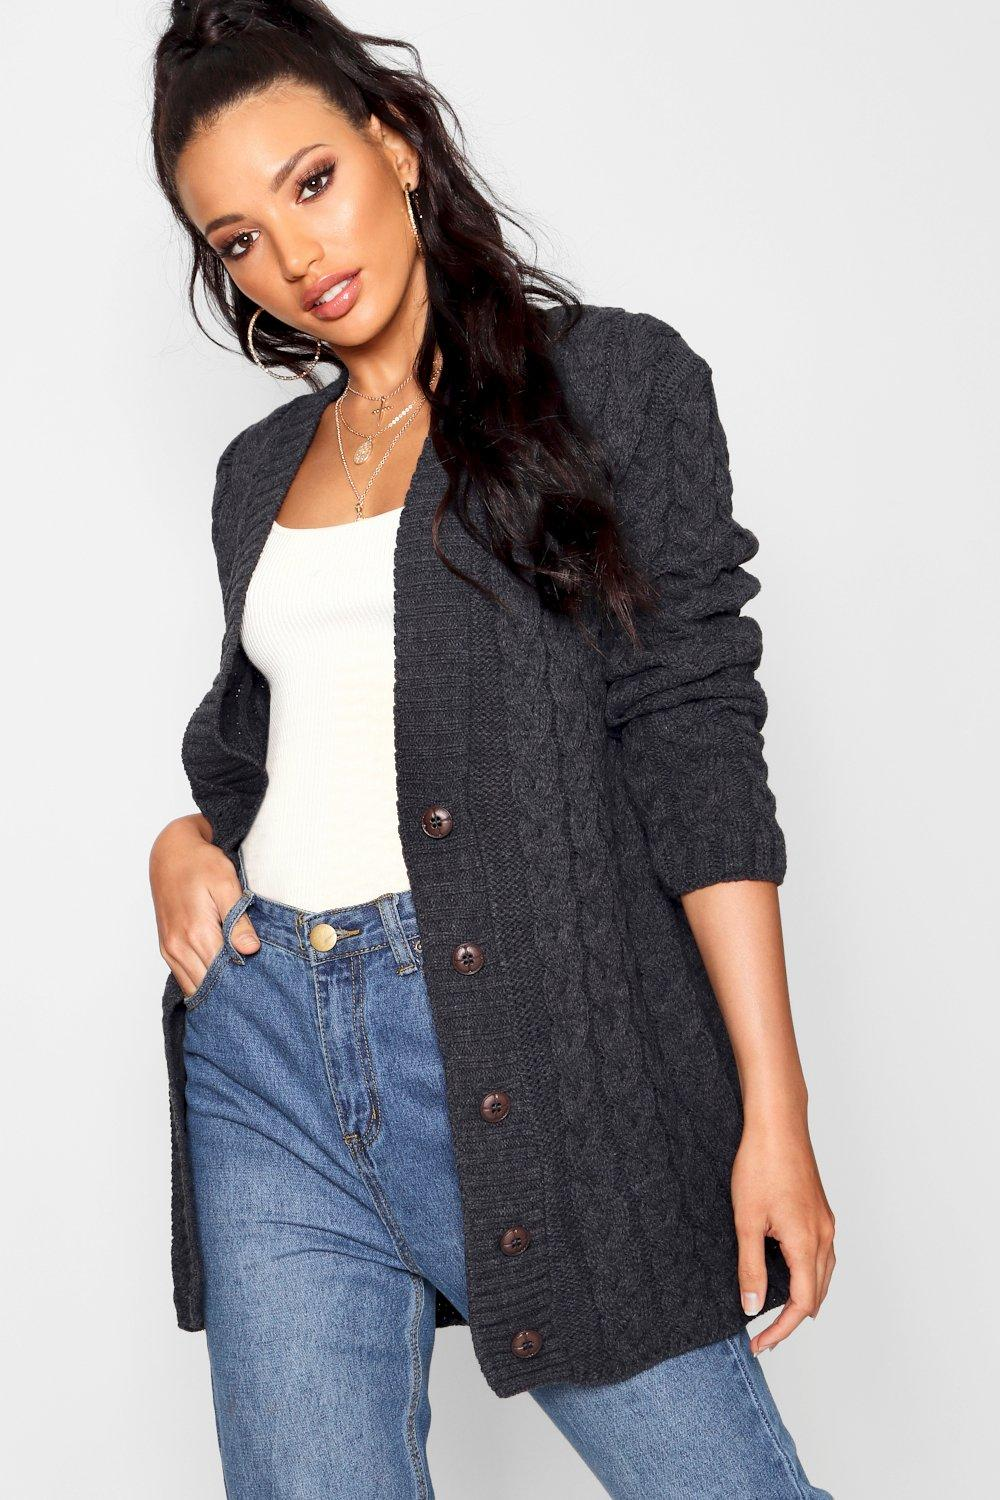 Boohoo Womens Lucy Cable Knit Cardigan   eBay